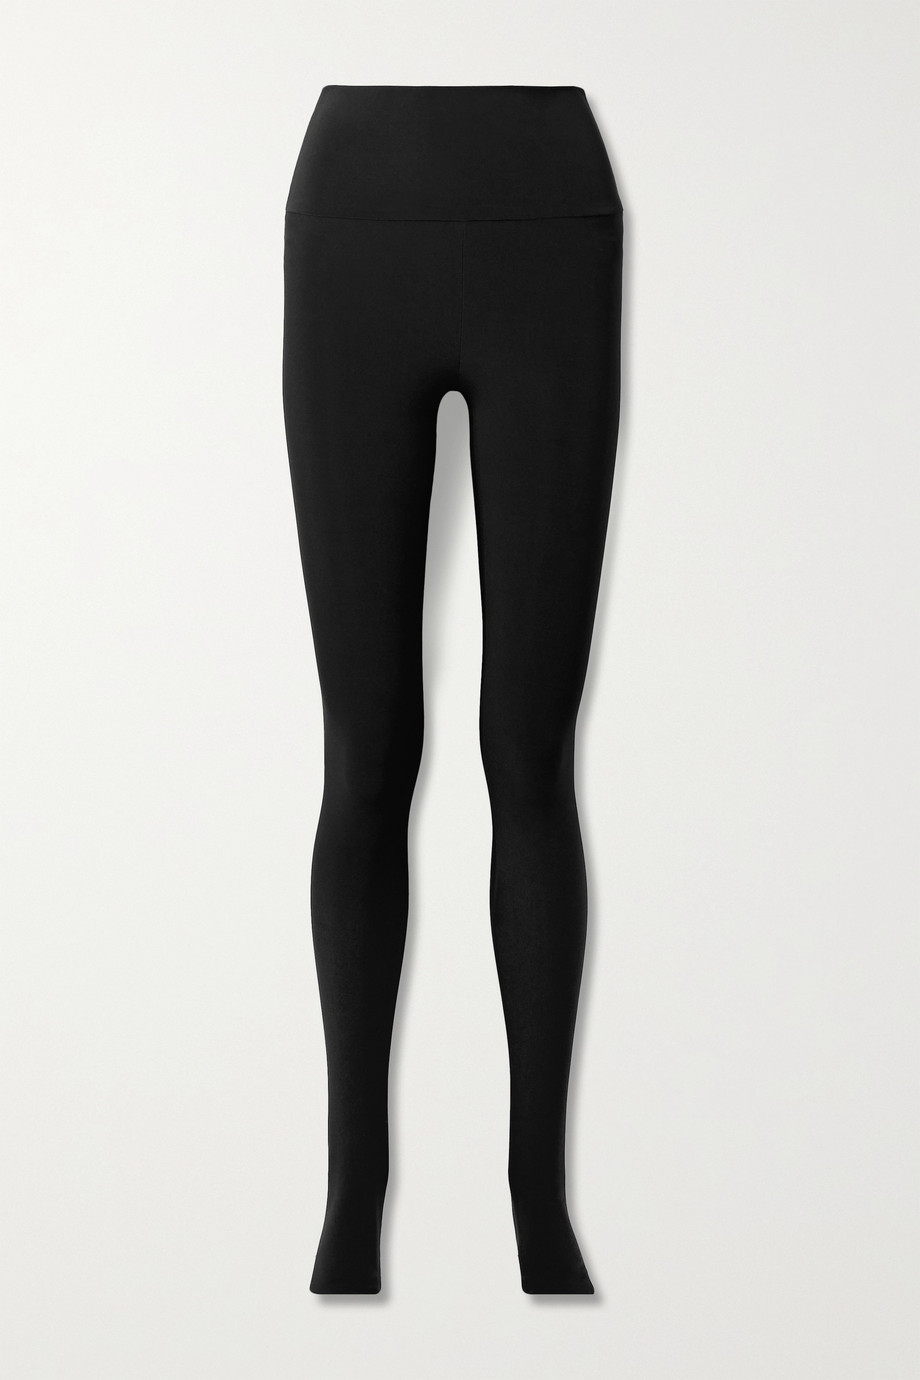 NORMA KAMALI Stretch-jersey stirrup leggings